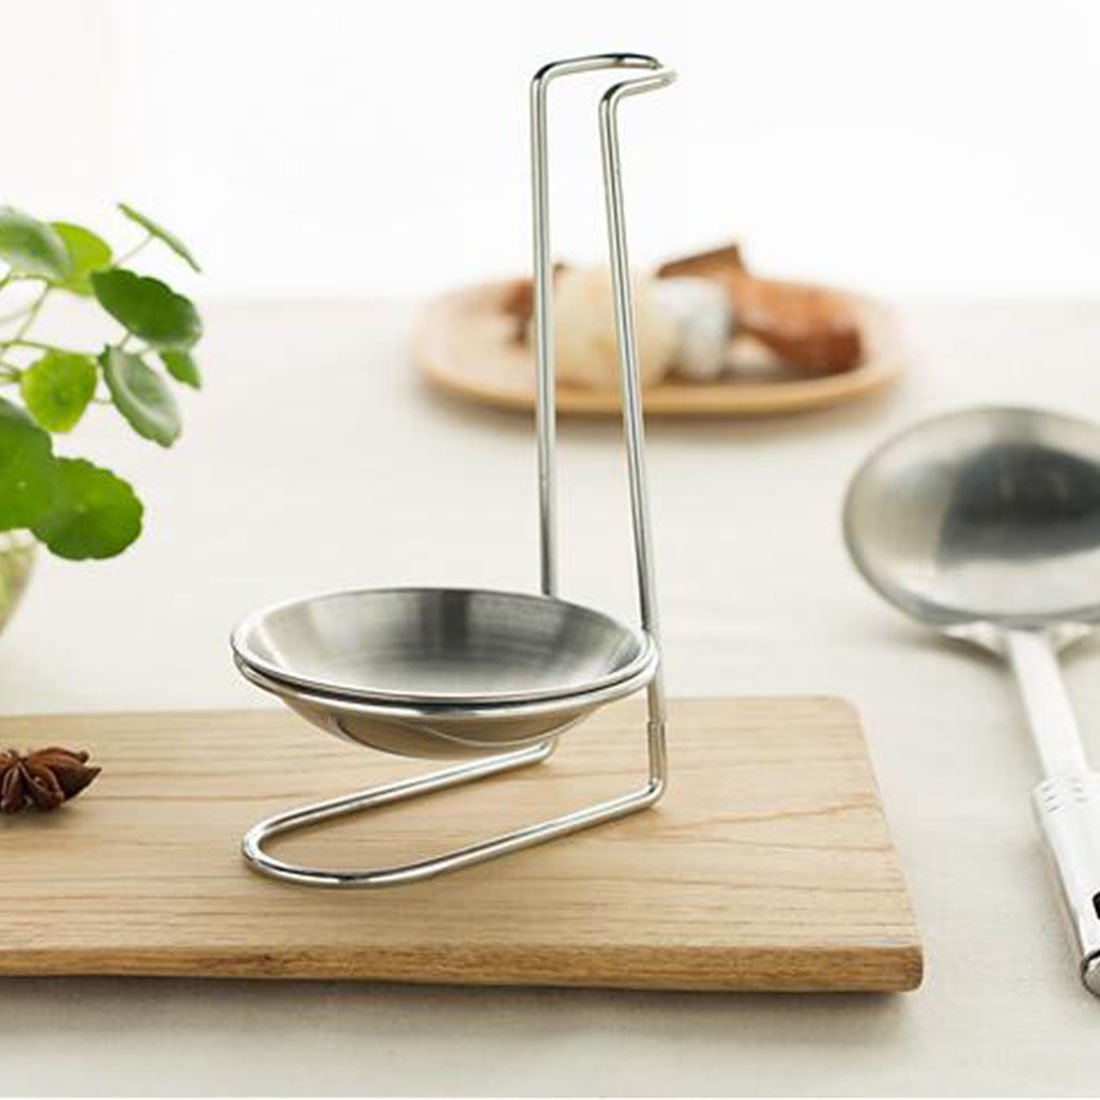 Ladle Rest Soup Ladle Holder Silver Onmexto COMINHKPR129467 Stainless Steel Spoon Rest Holder,Long Handle Vertical SPAC Saving Soup Ladles Holders Single